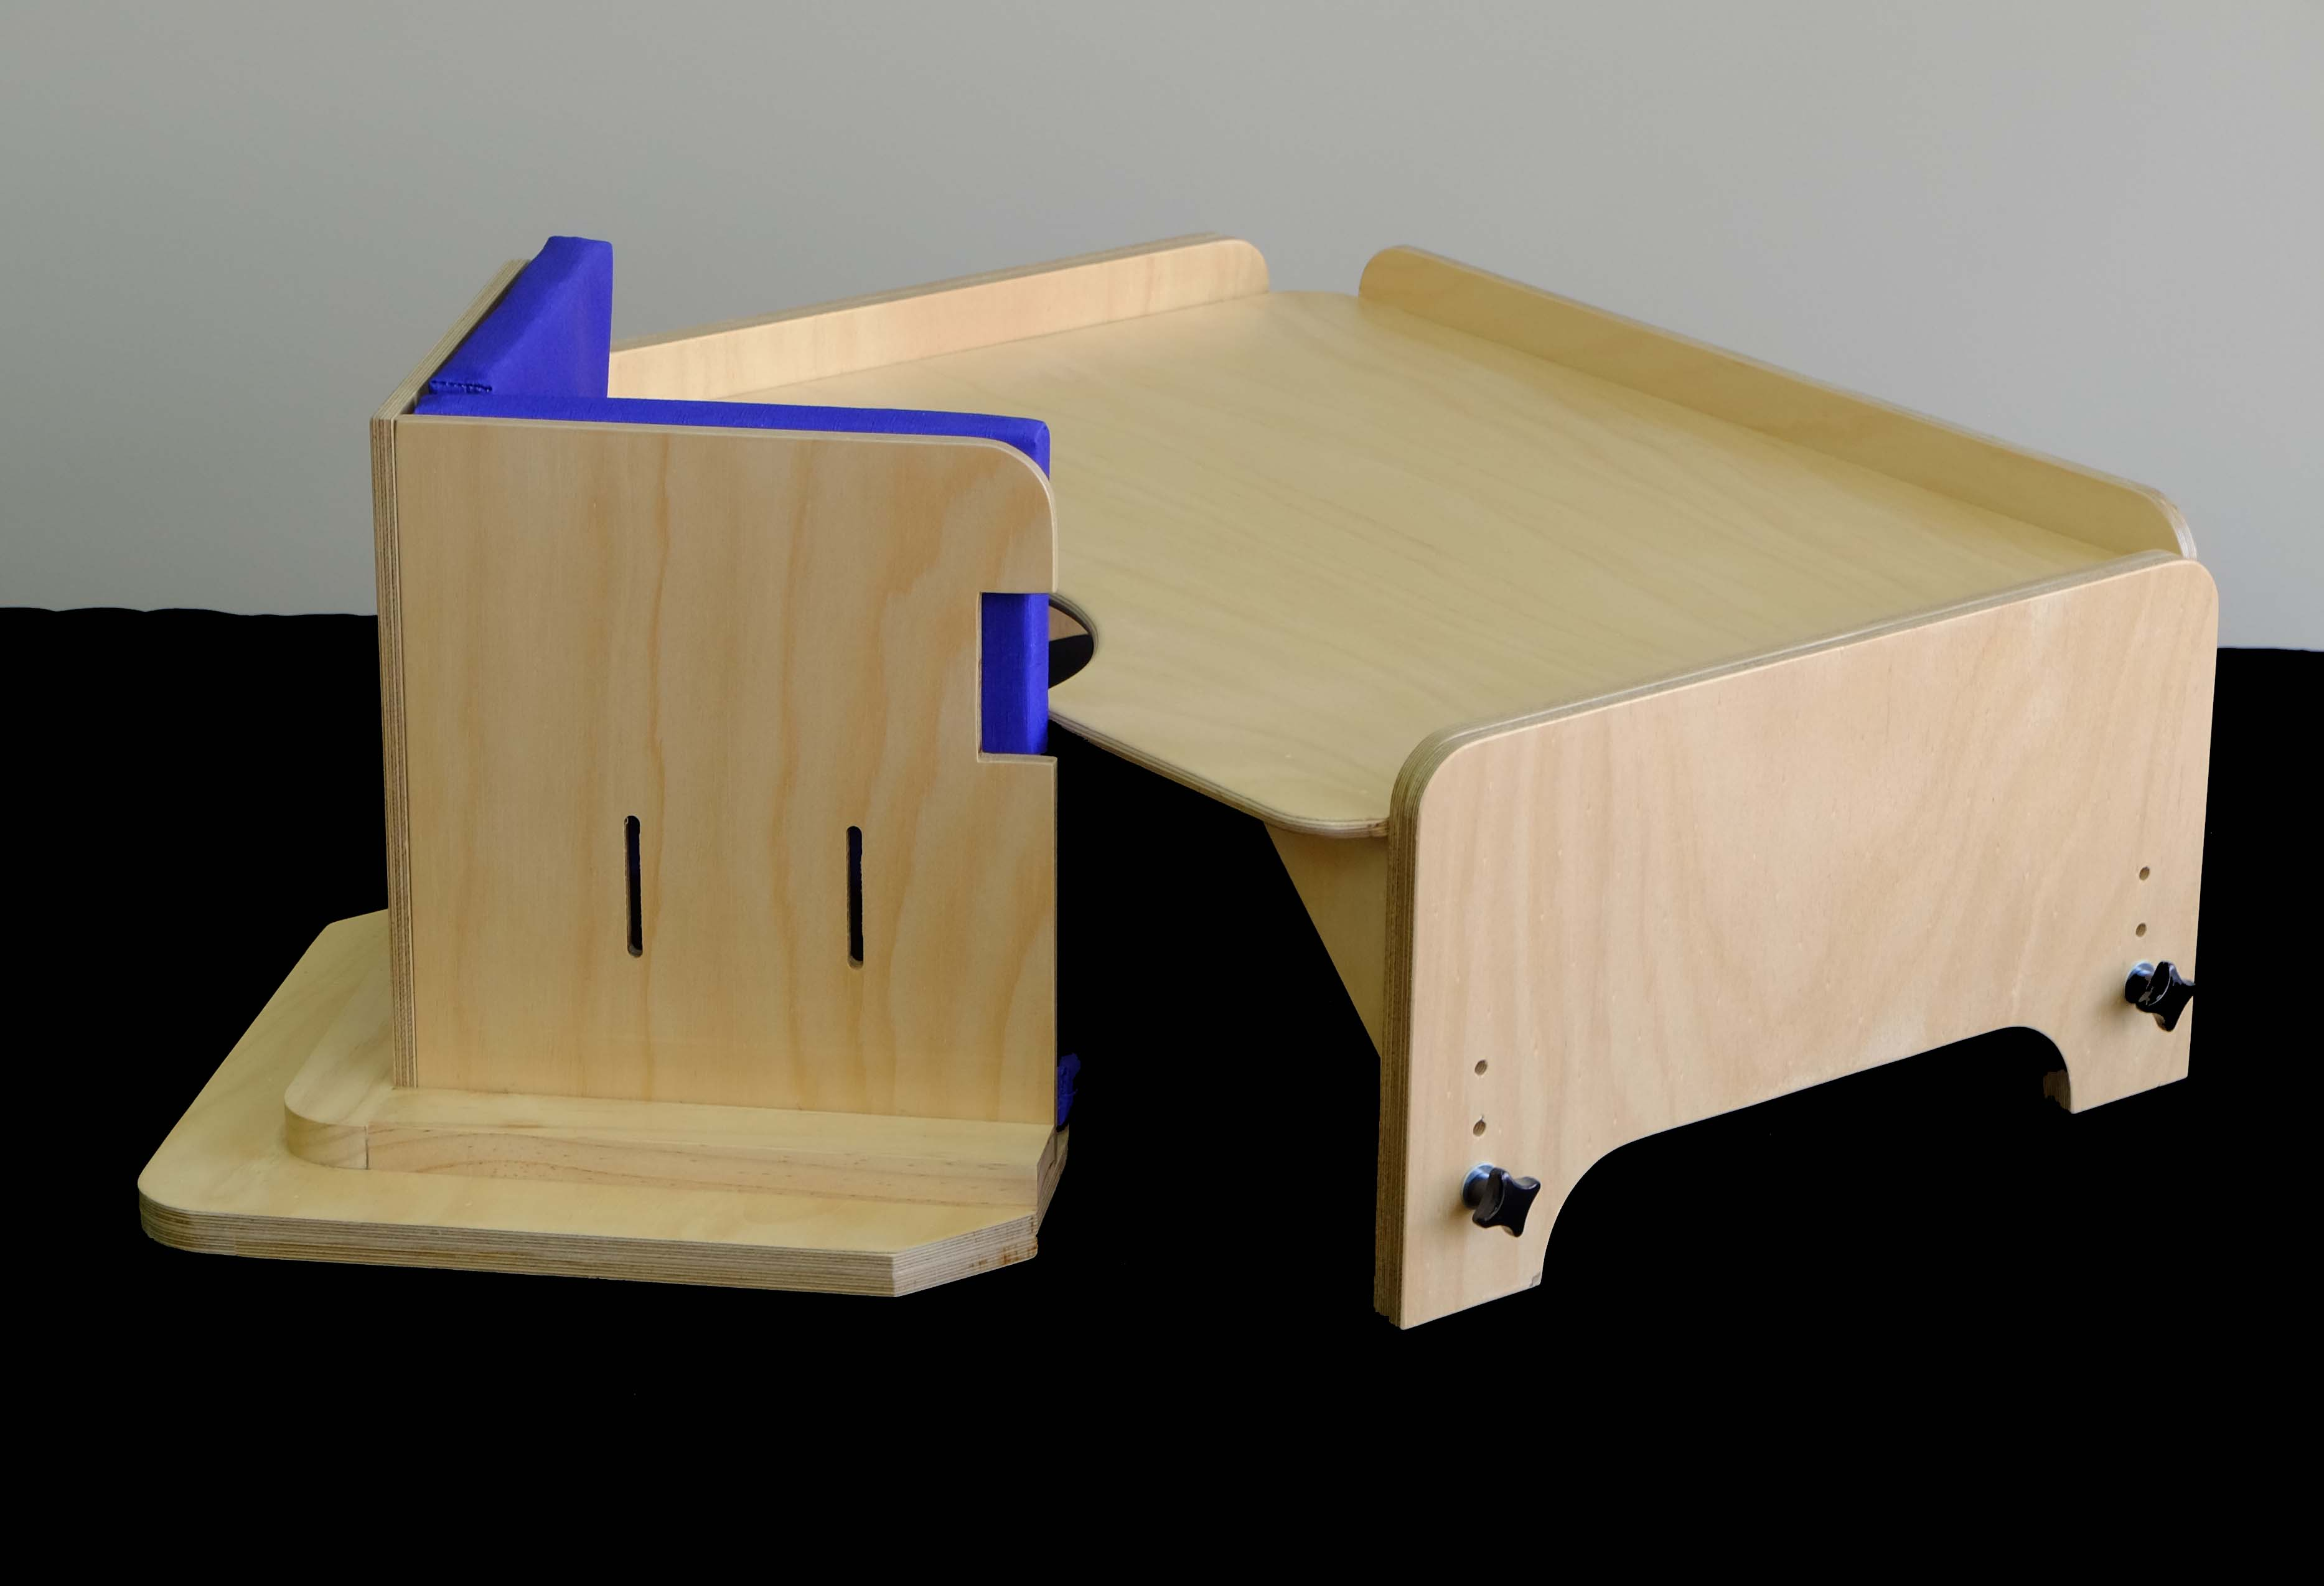 A smaller floor sitting corner chair and adjustable height table, for seating young children in a well-supported and functional position.